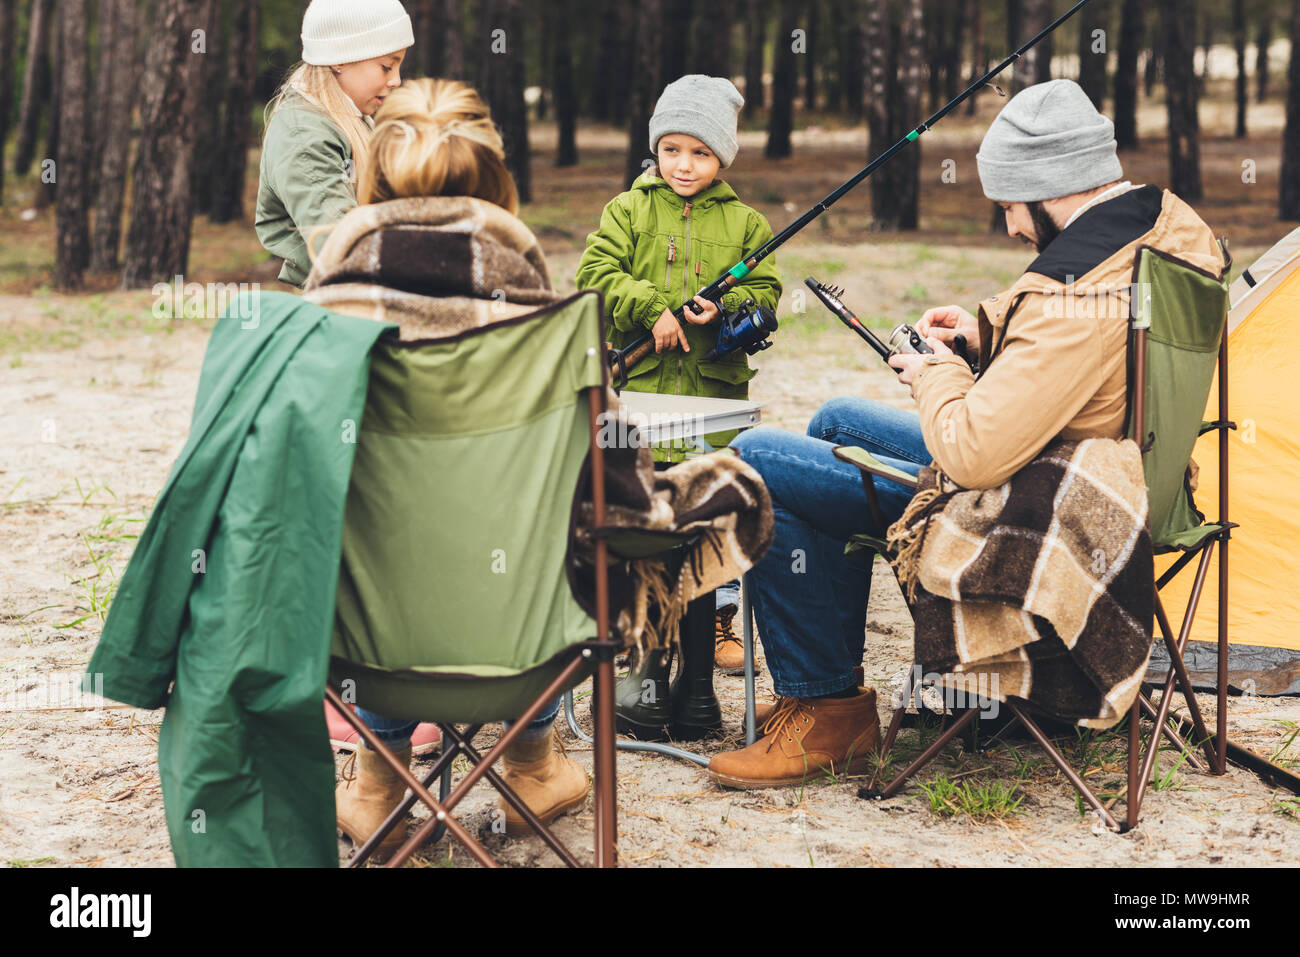 family with fishing rods on camping trip - Stock Image